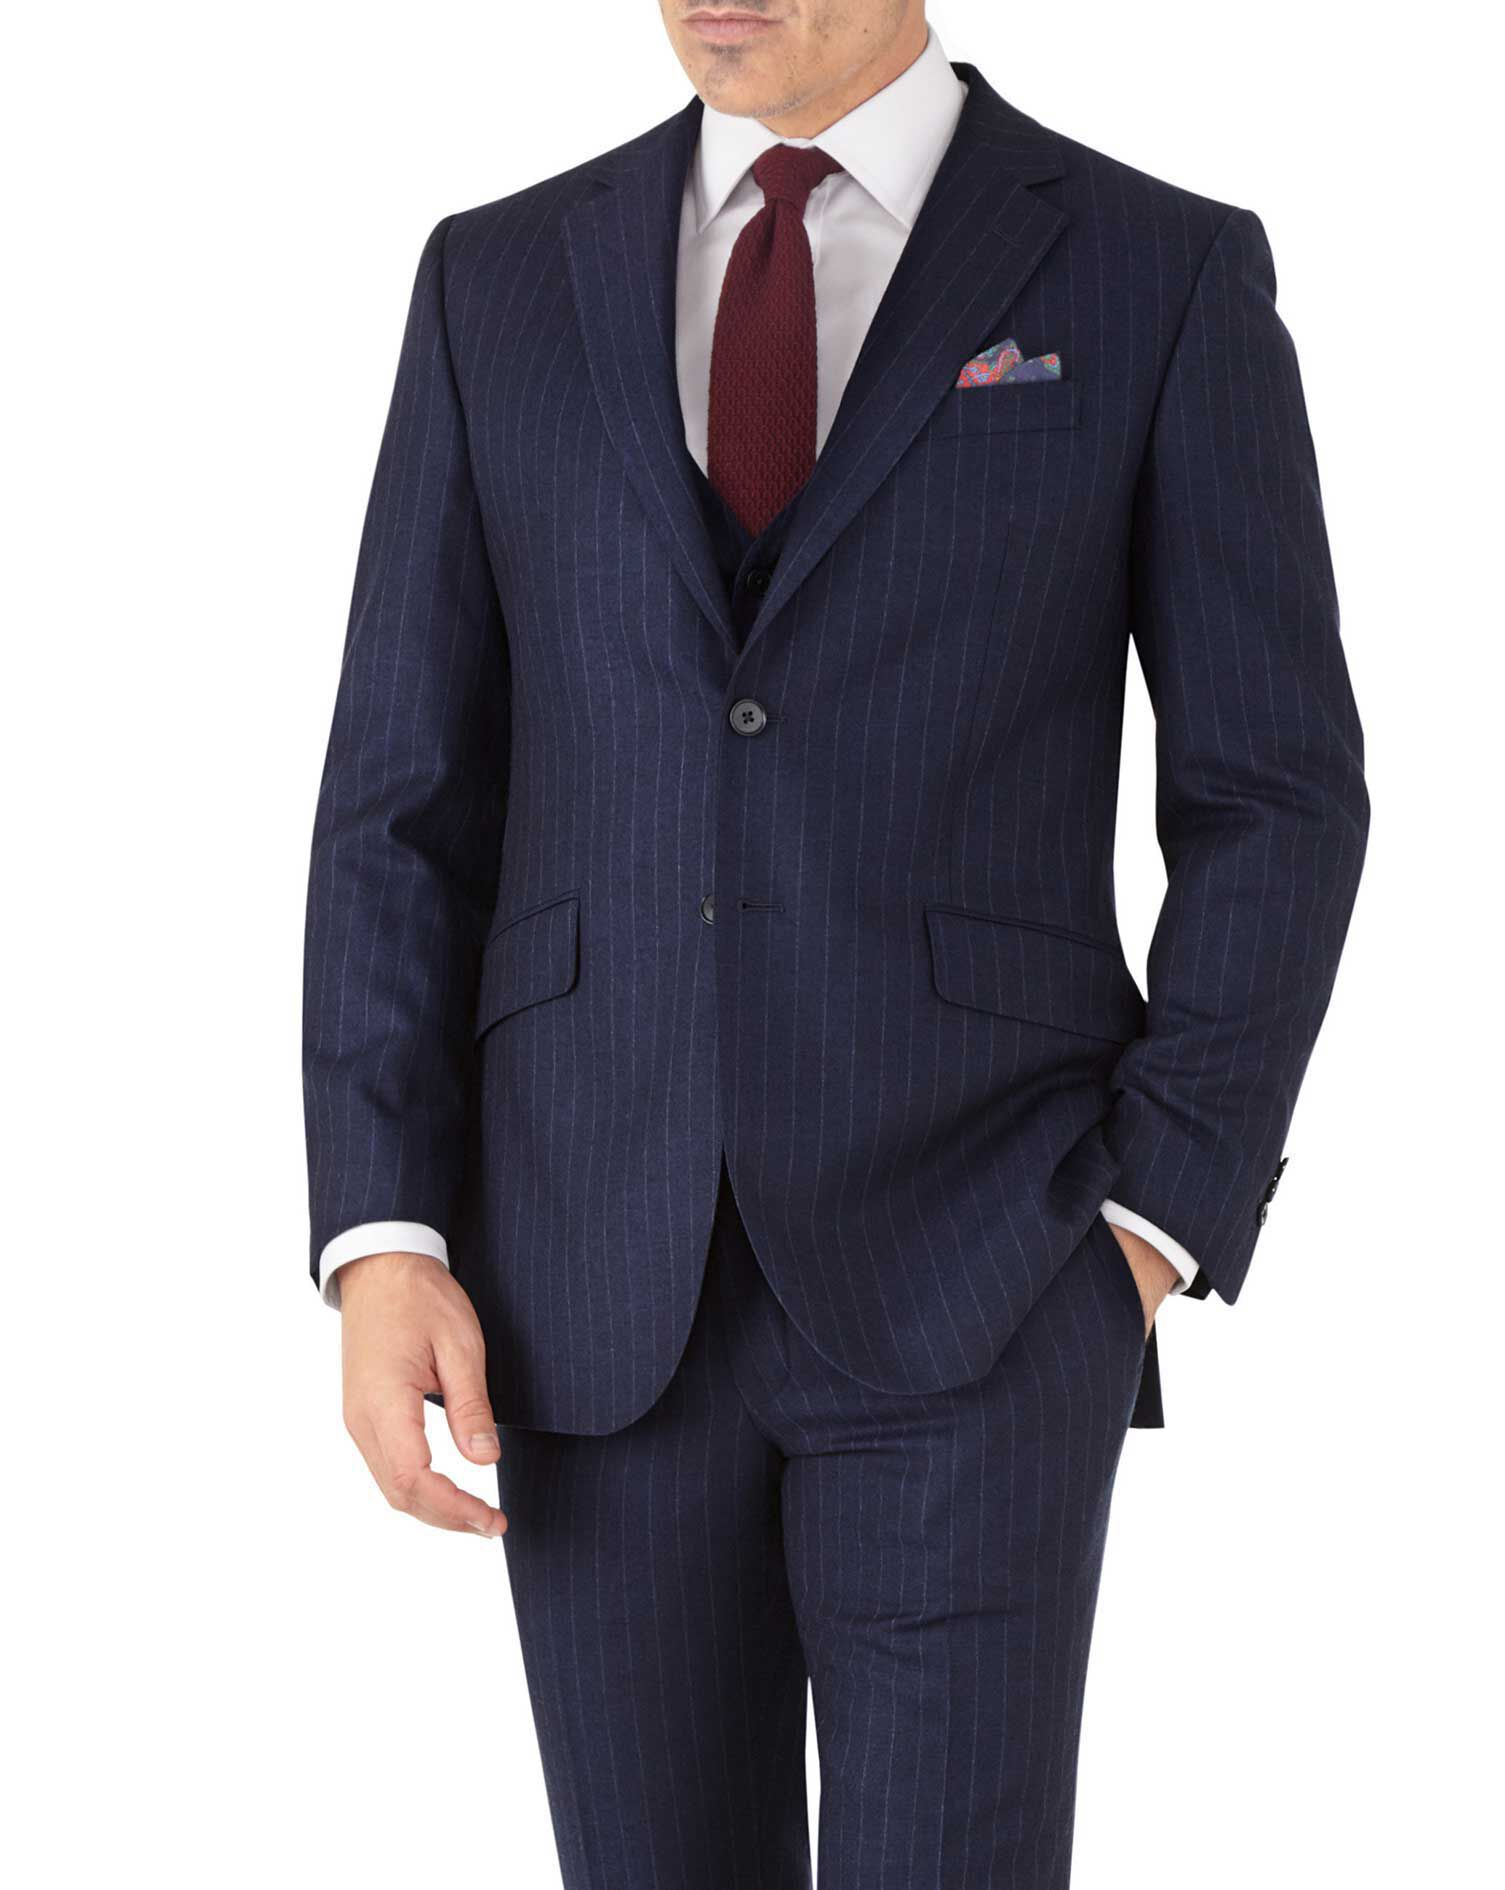 Navy Stripe Slim Fit Flannel Business Suit Wool Jacket Size 38 Short by Charles Tyrwhitt